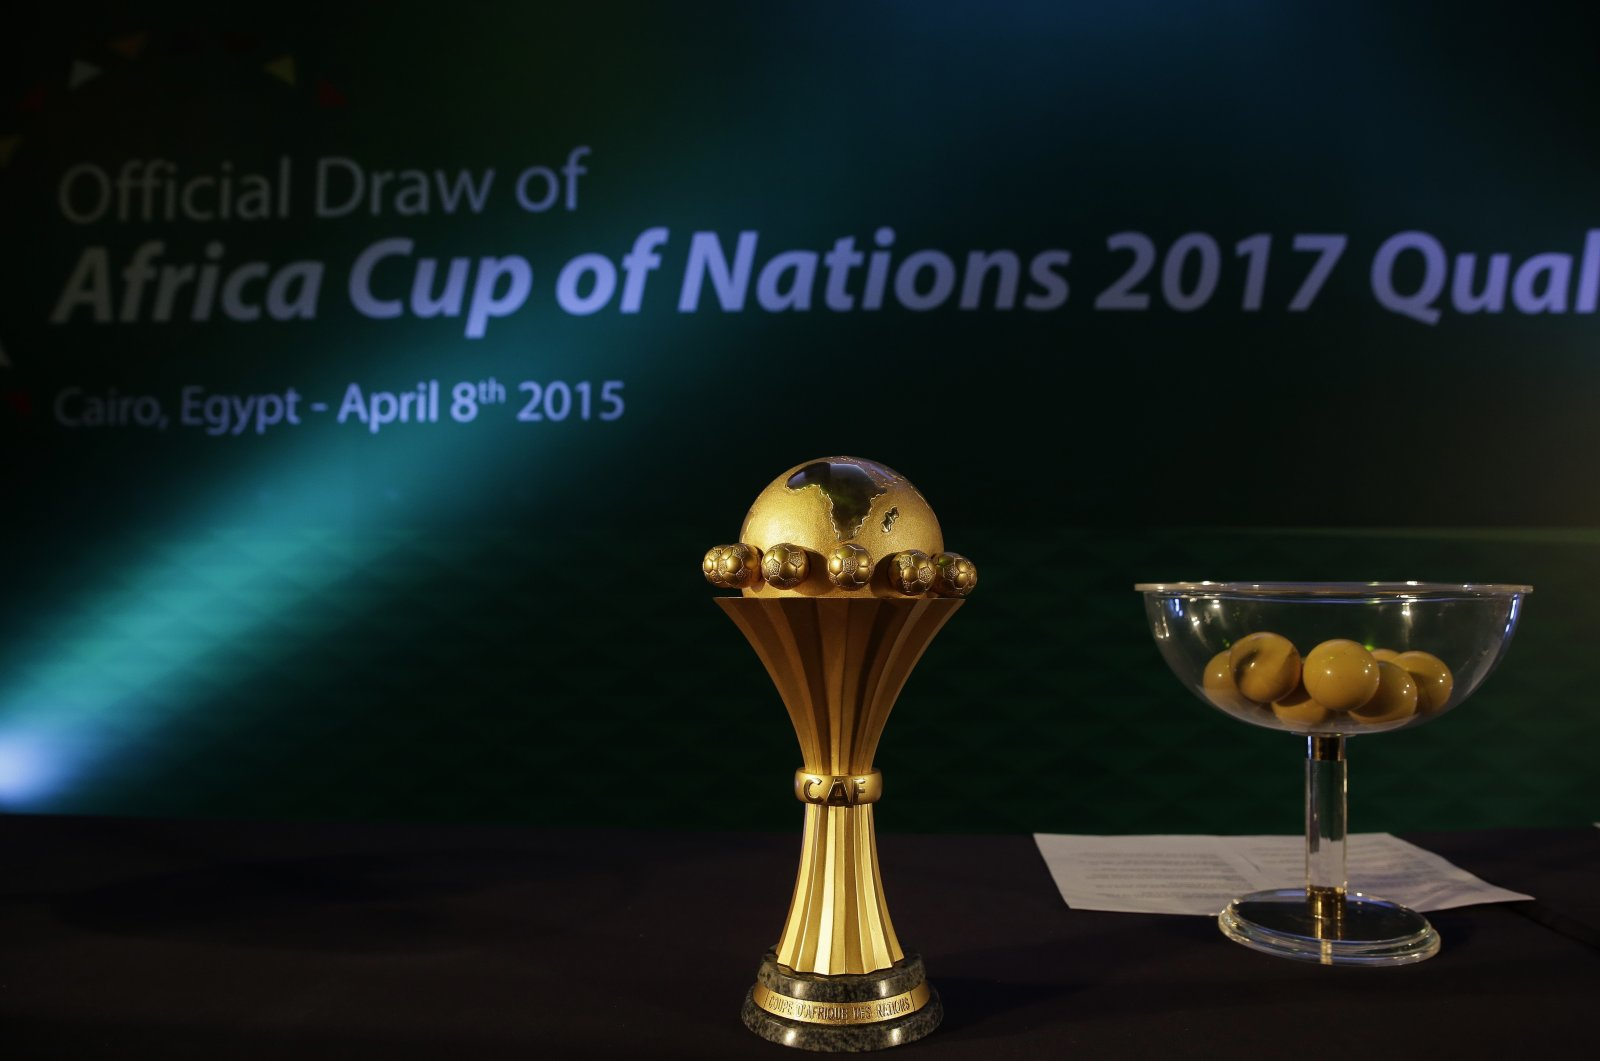 The African Cup of Nations trophy is on display during a meeting of the Confederation of African Football's executive committee in Cairo, Egypt, April 8, 2015. (AP Photo)